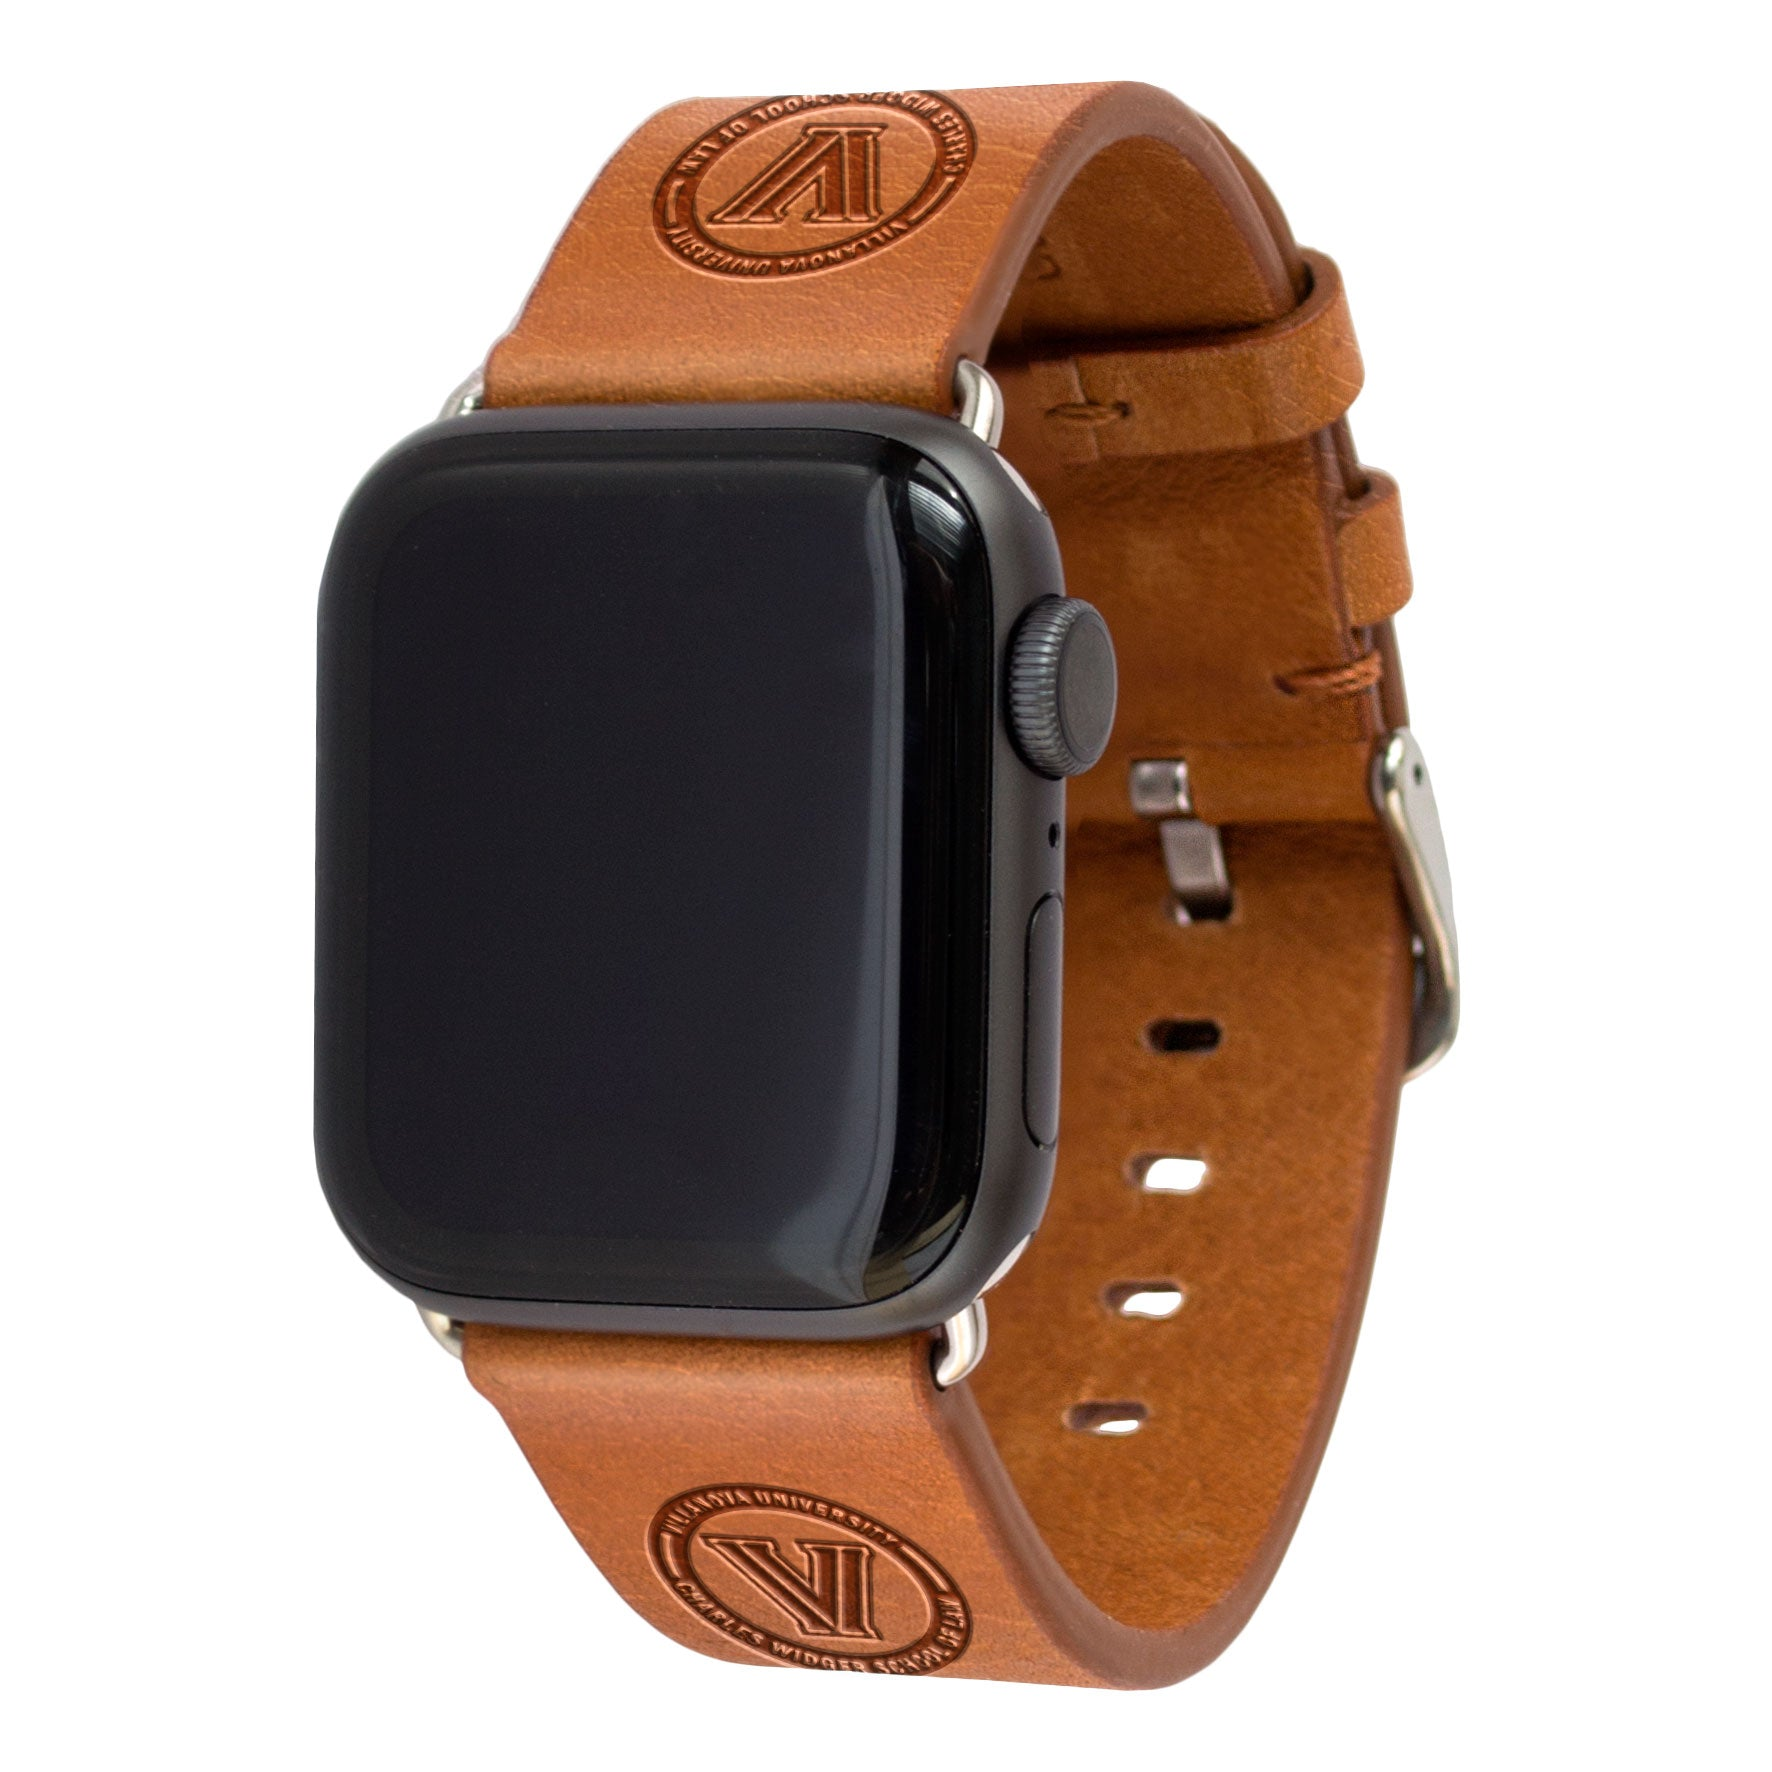 Charles Widger School of Law Leather Apple Watch Band